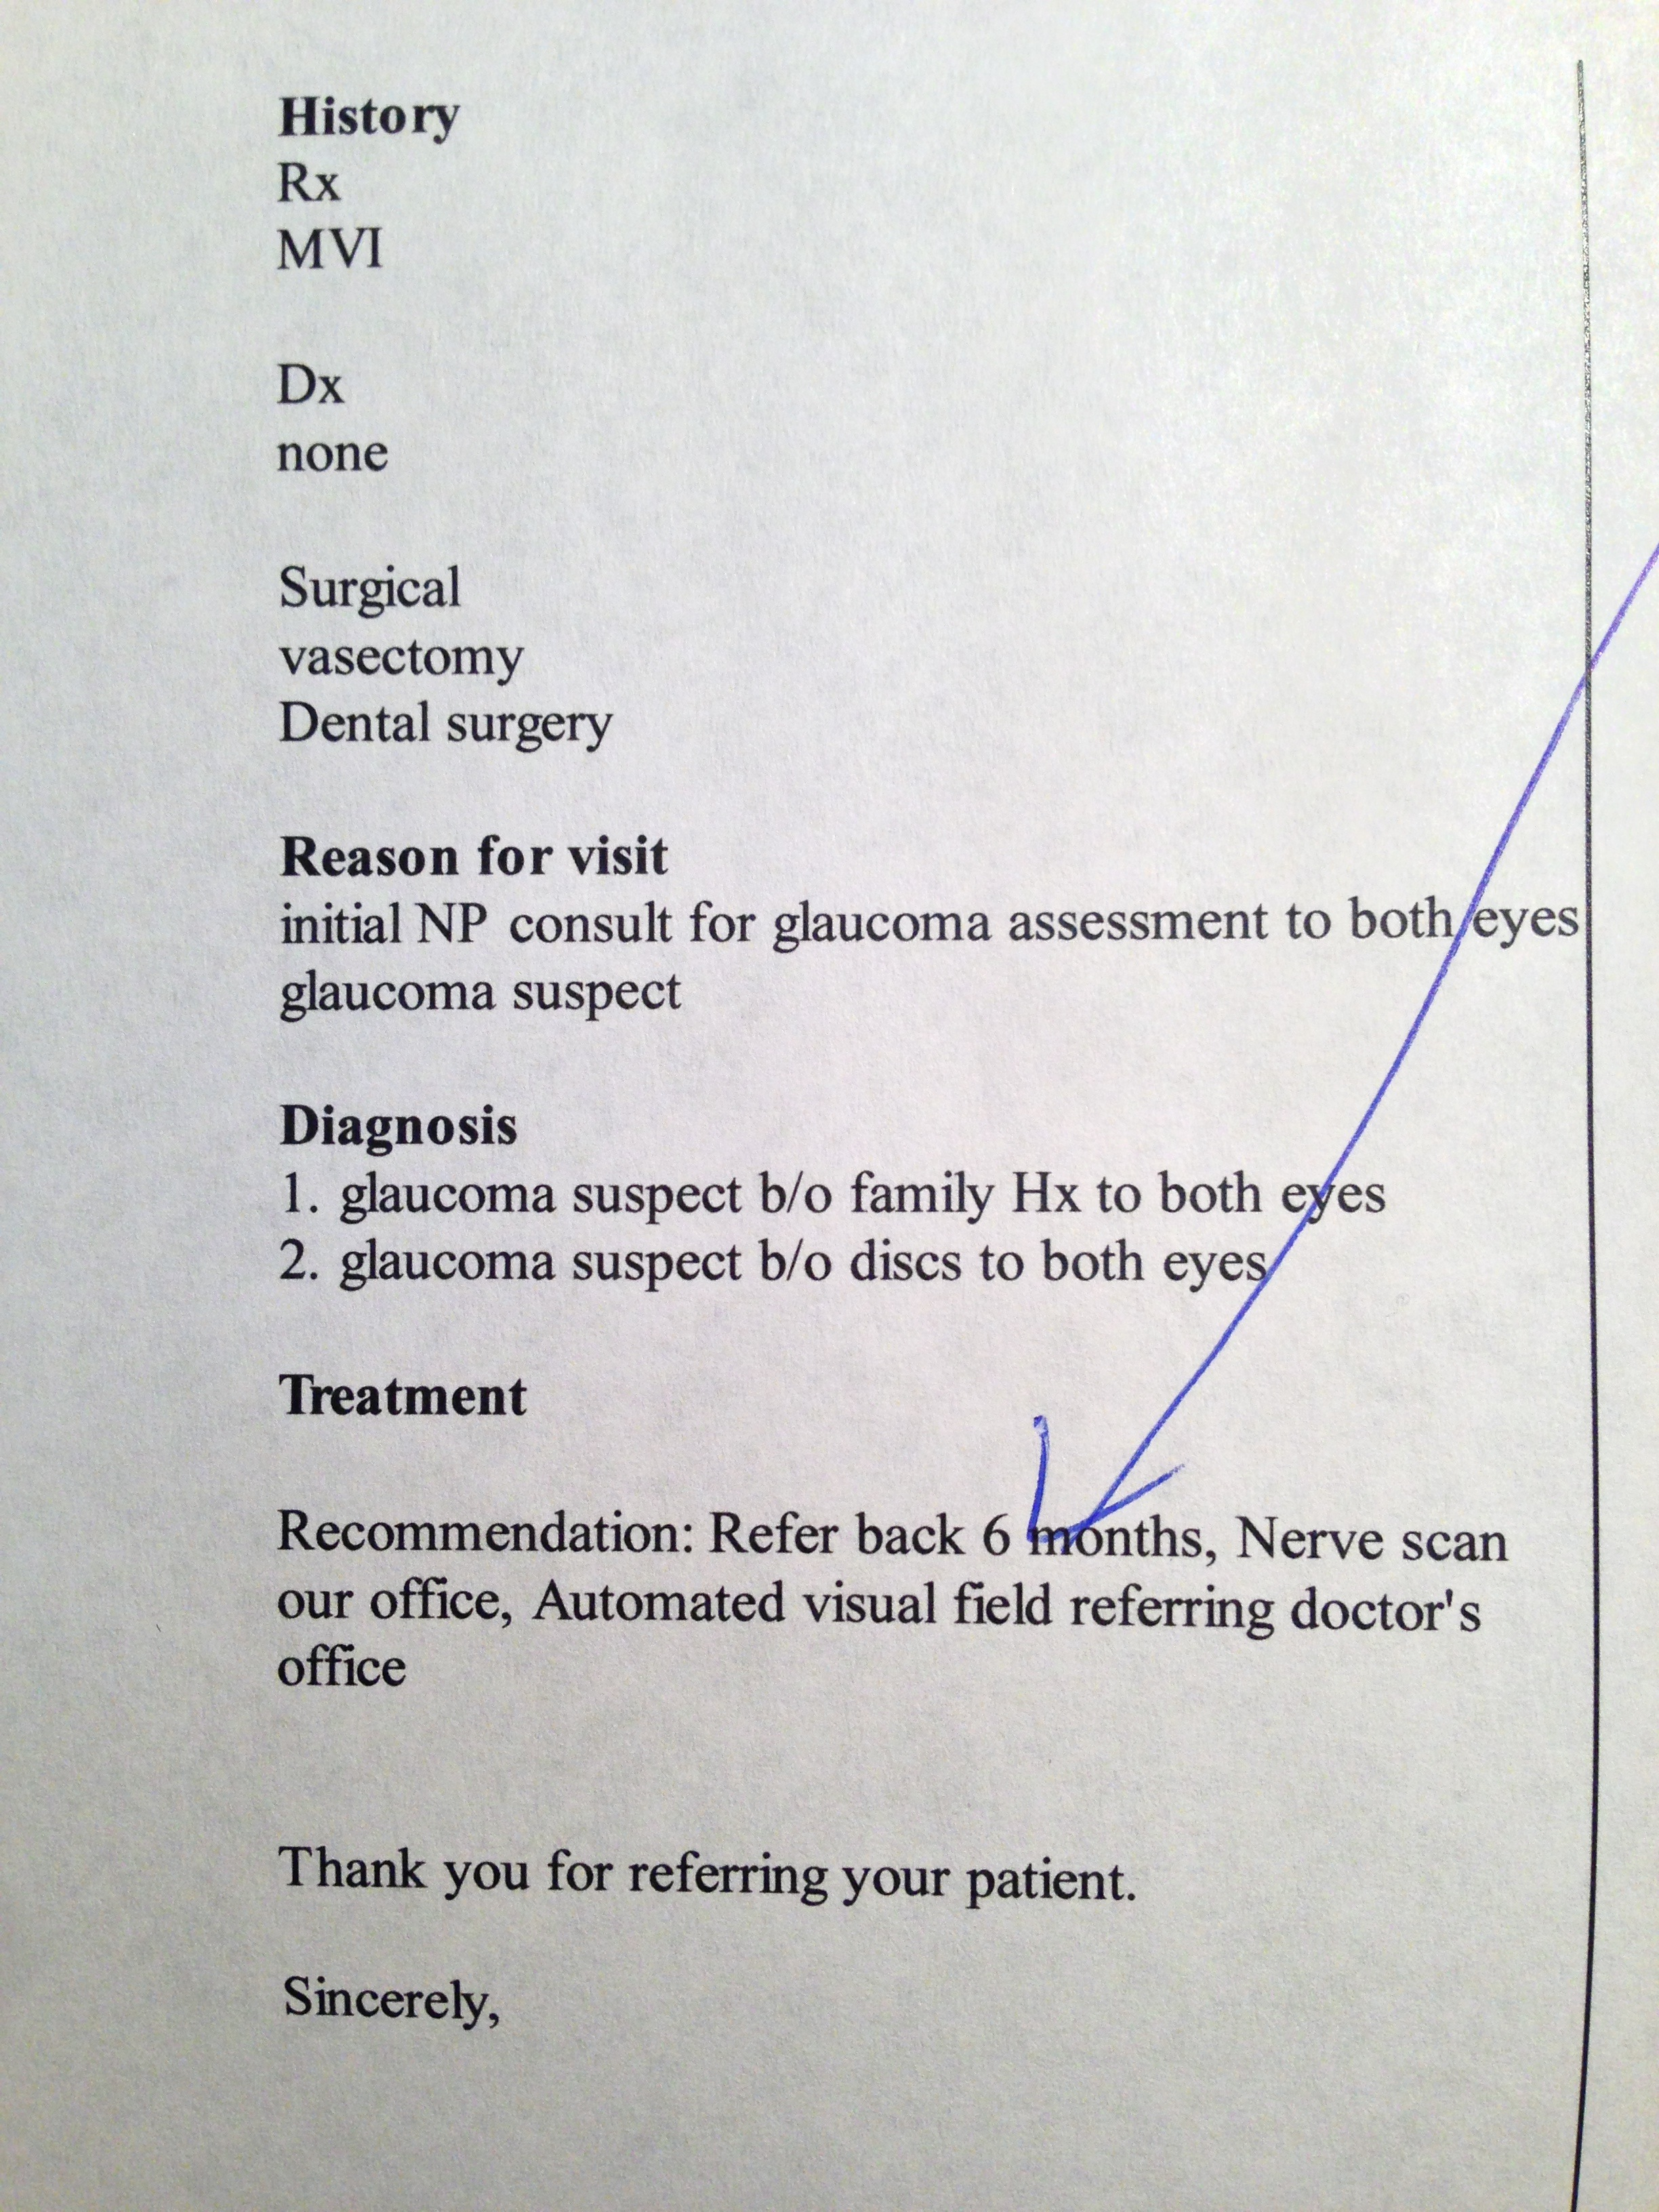 Glaucoma suspect before revising letter